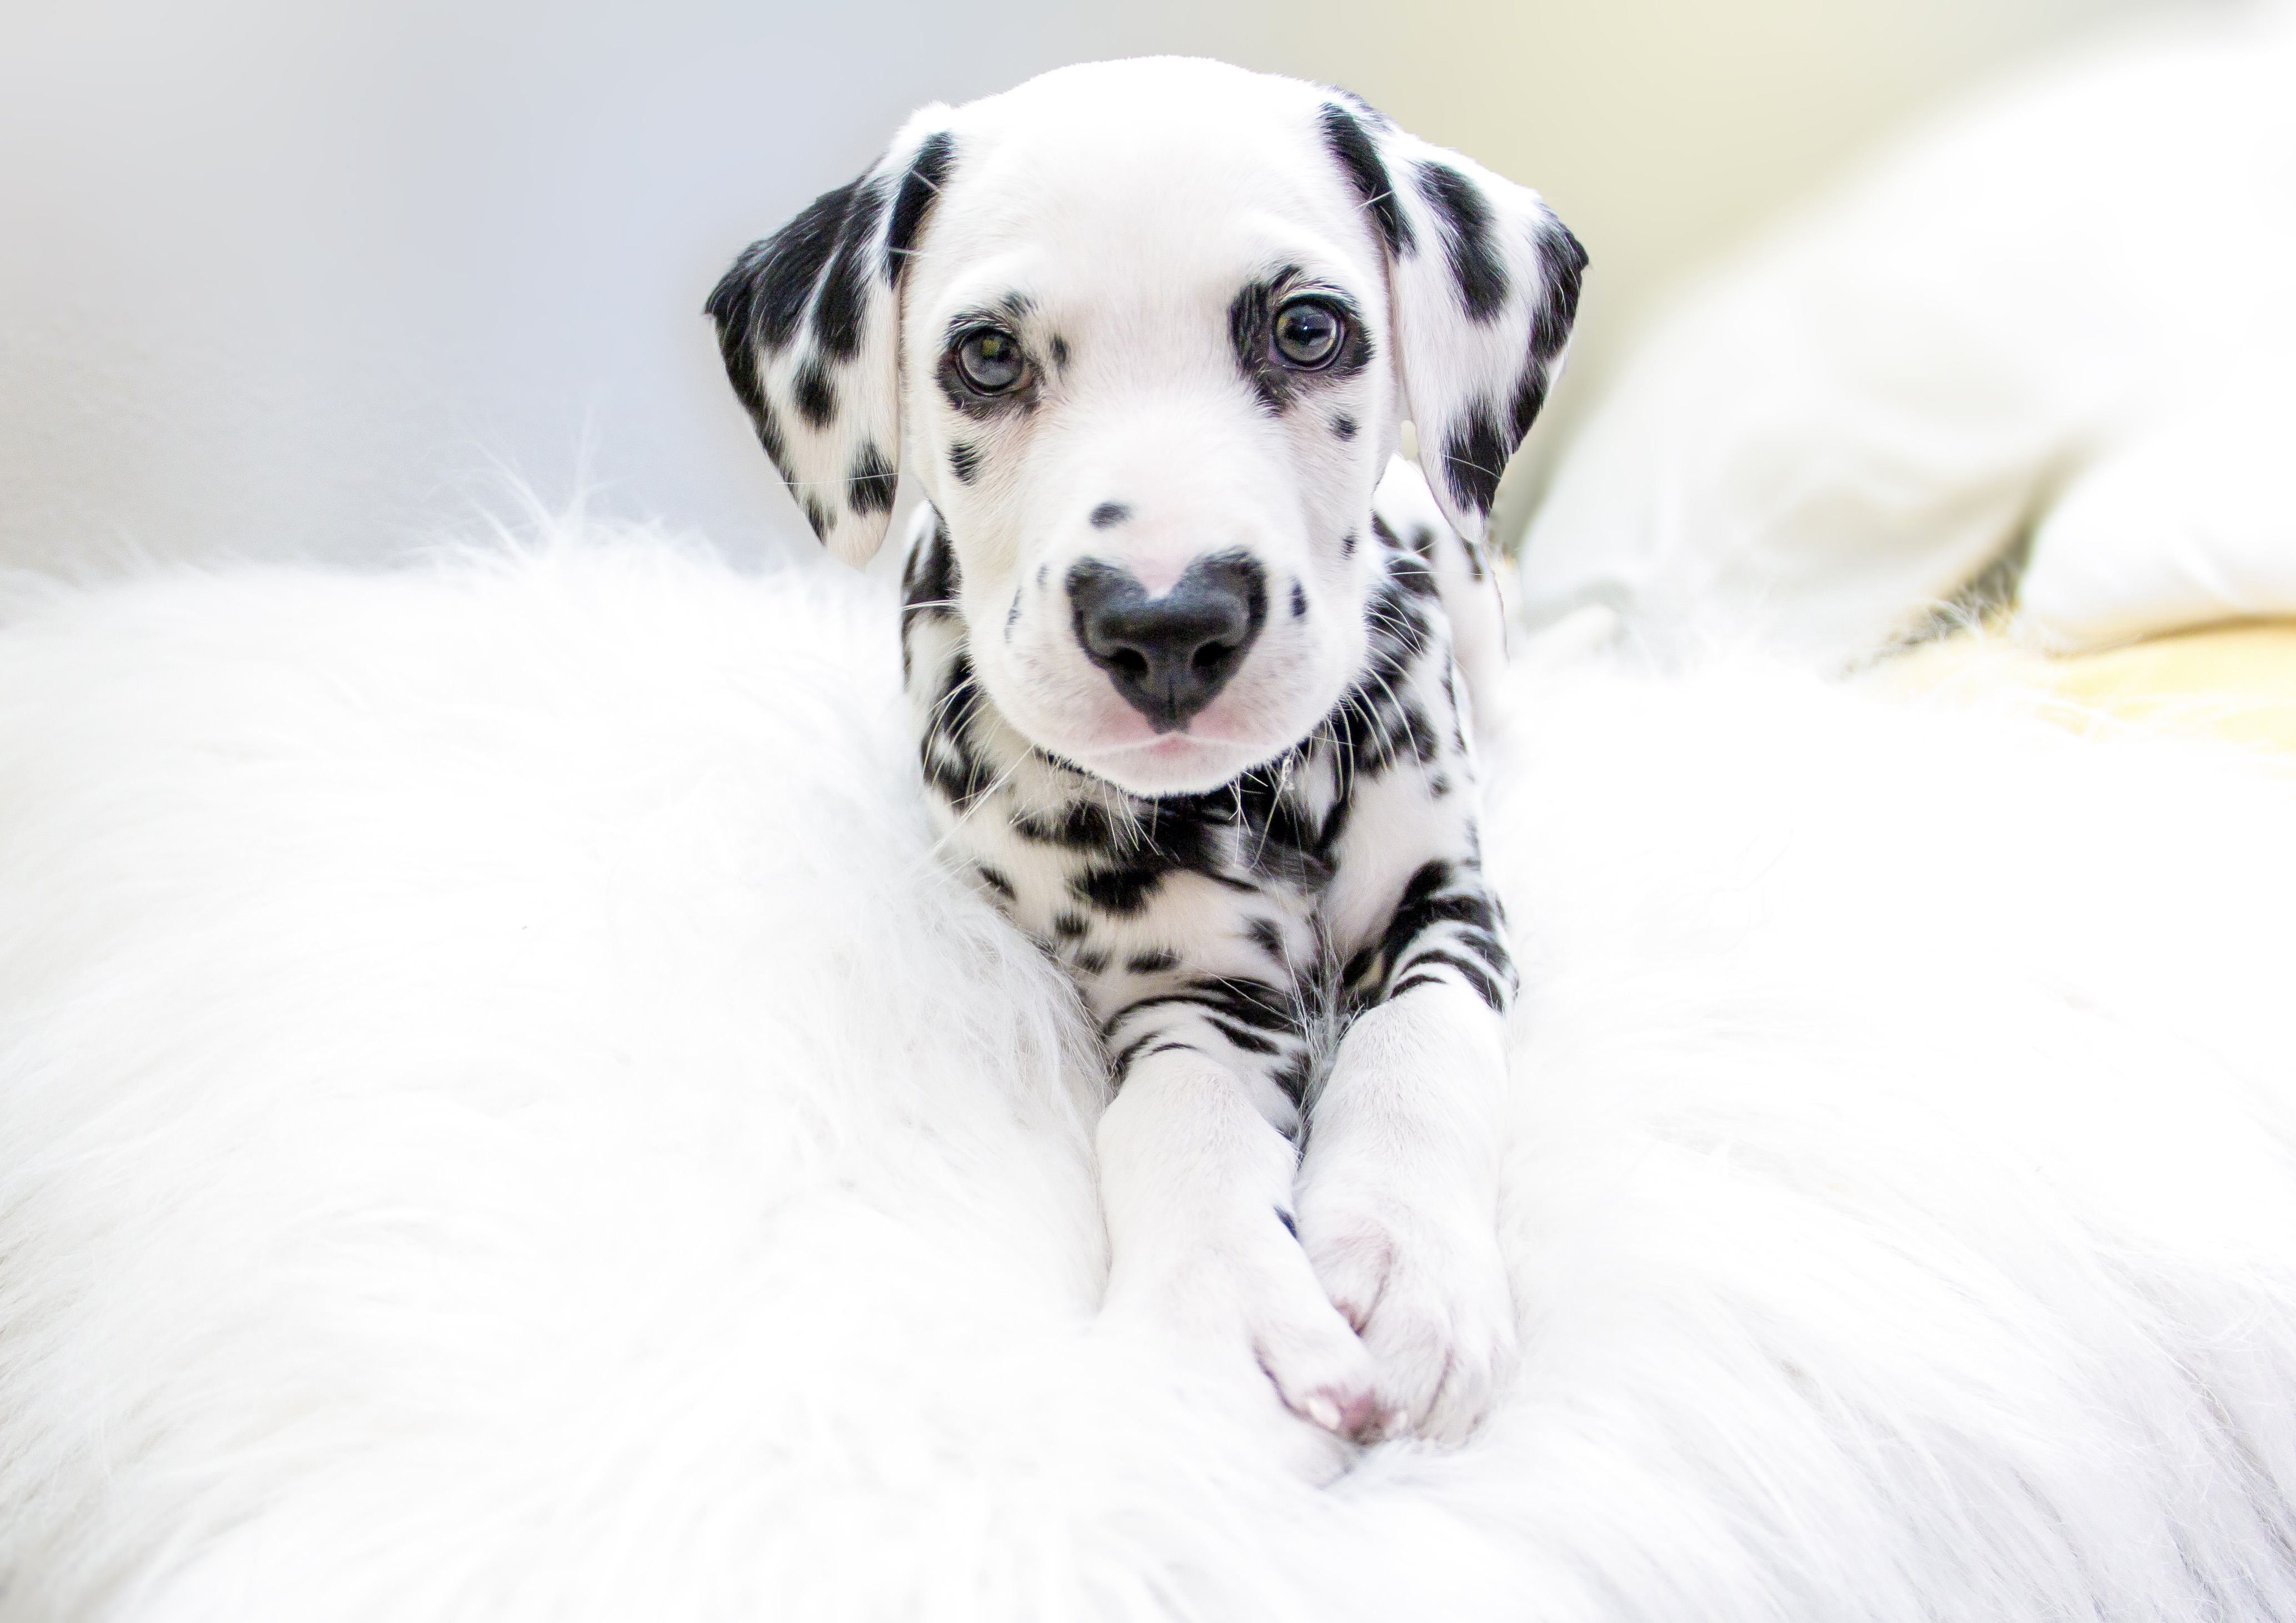 he s cute and he nose it adorable dalmatian puppy has heart shaped